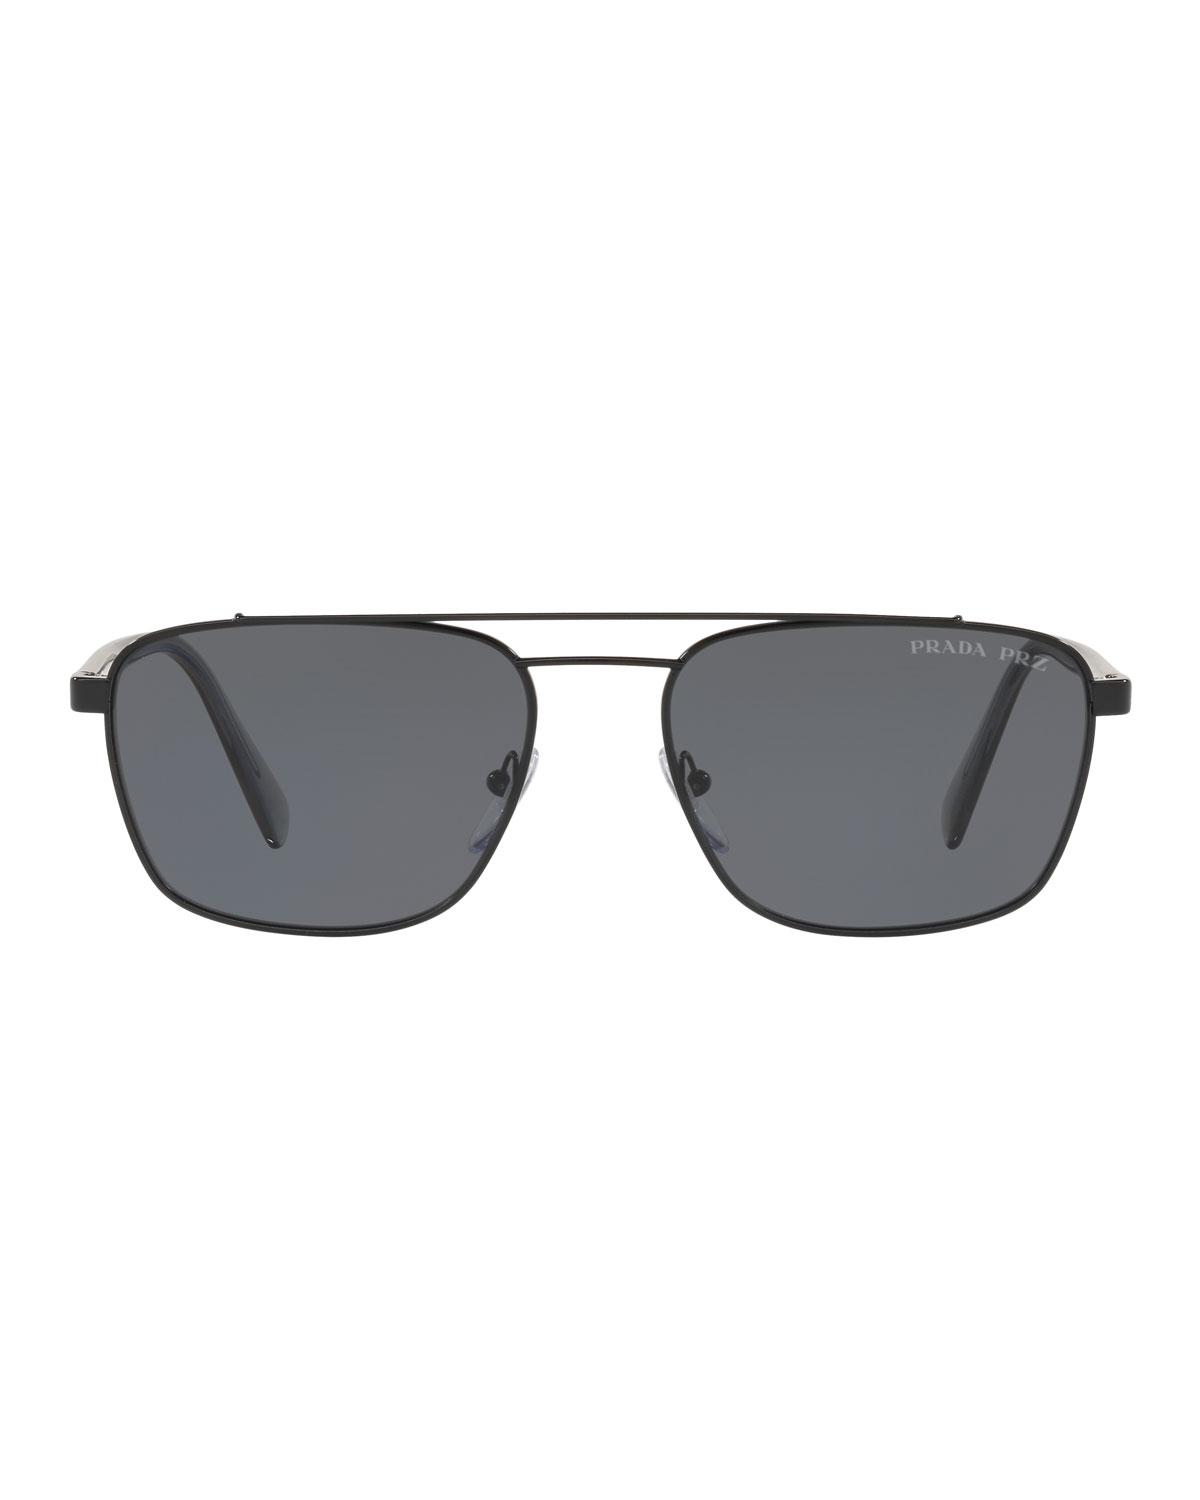 fd86f2a07ee8 Lyst - Prada Men s Square Metal Aviator Sunglasses - Solid Lenses ...